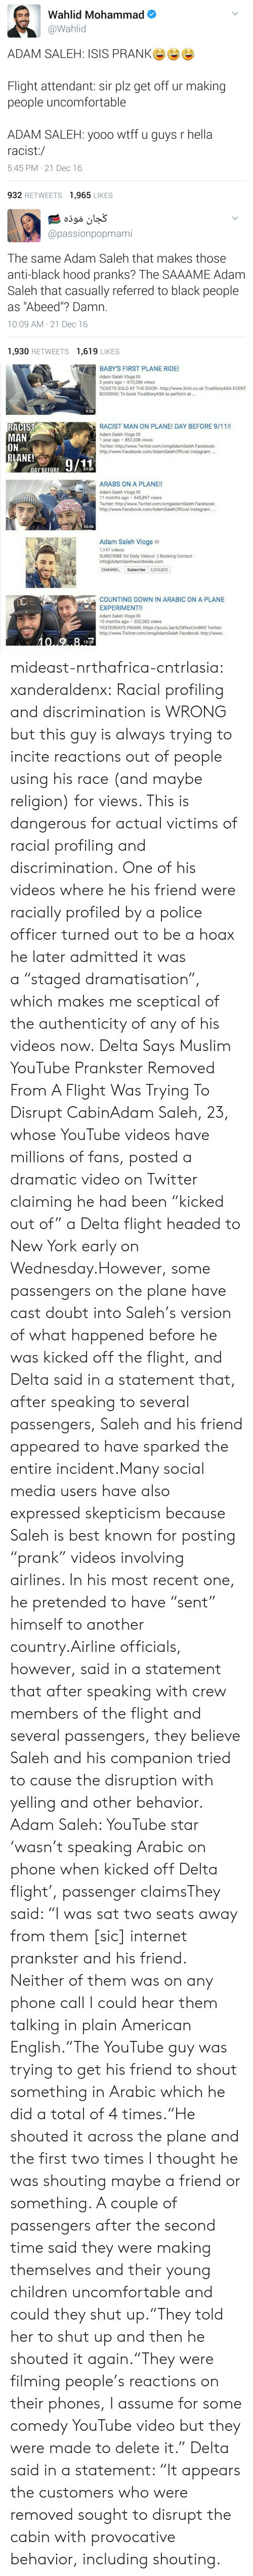 "Babys First: Wahlid Mohammad  @Wahlid  ADAM SALEH: ISIS PRANKe  Flight attendant: sir plz get off ur making  people uncomfortable  ADAM SALEH: yooo wtff u guys r hella  racist:/  5:45 PM 21 Dec 16  932 RETWEETS 1,965 LIKES   @passionpopmami  The same Adam Saleh that makes those  anti-black hood pranks? The SAAAME Adam  Saleh that casually referred to black people  as ""Abeed""? Damn.  10:09 AM- 21 Dec 16  1,930 RETWEETS 1,619 LIKES   BABYS FIRST PLANE RIDE!  Adam Saleh Vlogs  2 years ago 610,268 views  TICKETS SOLD AT THE DOOR http://www.3mh.co.uk TrueStoryASA EVENT  BOOKING: To book TrueStoryASA to perform at...  9:56  RACIST  MAN  RACIST MAN ON PLANE! DAY BEFORE 9/11!  Adam Saleh Vlogs  1 year ago 852,338 views  Twitter: http://www.Twitter.com/omgAdamSaleh Facebook:  http://www.Facebook.com/AdamSalehOfficial Instagram:.  PLANE0/11  13:28  ARABS ON A PLANE!!  Adam Saleh Vlogs  Twitter: http://www.Twitter.com/omgAdamSaleh Facebook  11 months ago 545,897 views  http://www.Facebook.com/AdamSalehOfficial Instagram  10:06  Adam Saleh Vlogs a  1.147 videos  SUBSCRIBE for Daily Videos! ) Booking Contact  info@AdamSalehworldwide.com.  CHANNEL Subscribe 2,250,822  COUNTING DOWN IN ARABIC ON A PLANE  EXPERIMENT!!  Adam Saleh Vlogs  10 months ago 320,382 views  YESTERDAYS PRANK: https://youtu.be/6ZWfxxCmdW0 Twitter  http://www.Twitter.com/omgAdamSaleh Facebook: http://www  15:23 mideast-nrthafrica-cntrlasia:  xanderaldenx: Racial profiling and discrimination is WRONG but this guy is always trying to incite reactions out of people using his race (and maybe religion) for views. This is dangerous for actual victims of racial profiling and discrimination. One of his videos where he  his friend were racially profiled by a police officer turned out to be a hoax  he later admitted it was a ""staged dramatisation"", which makes me sceptical of the authenticity of any of his videos now.  Delta Says Muslim YouTube Prankster Removed From A Flight Was Trying To Disrupt CabinAdam Saleh, 23, whose YouTube videos have millions of fans, posted a dramatic video on Twitter claiming he had been ""kicked out of"" a Delta flight headed to New York early on Wednesday.However, some passengers on the plane have cast doubt into Saleh's version of what happened before he was kicked off the flight, and Delta said in a statement that, after speaking to several passengers, Saleh and his friend appeared to have sparked the entire incident.Many social media users have also expressed skepticism because Saleh is best known for posting ""prank"" videos involving airlines. In his most recent one, he pretended to have ""sent"" himself to another country.Airline officials, however, said in a statement that after speaking with crew members of the flight and several passengers, they believe Saleh and his companion tried to cause the disruption with yelling and other behavior.  Adam Saleh: YouTube star 'wasn't speaking Arabic on phone when kicked off Delta flight', passenger claimsThey said: ""I was sat two seats away from them [sic] internet prankster and his friend. Neither of them was on any phone call I could hear them talking in plain American English.""The YouTube guy was trying to get his friend to shout something in Arabic which he did a total of 4 times.""He shouted it across the plane and the first two times I thought he was shouting maybe a friend or something. A couple of passengers after the second time said they were making themselves and their young children uncomfortable and could they shut up.""They told her to shut up and then he shouted it again.""They were filming people's reactions on their phones, I assume for some comedy YouTube video but they were made to delete it.""  Delta said in a statement: ""It appears the customers who were removed sought to disrupt the cabin with provocative behavior, including shouting."